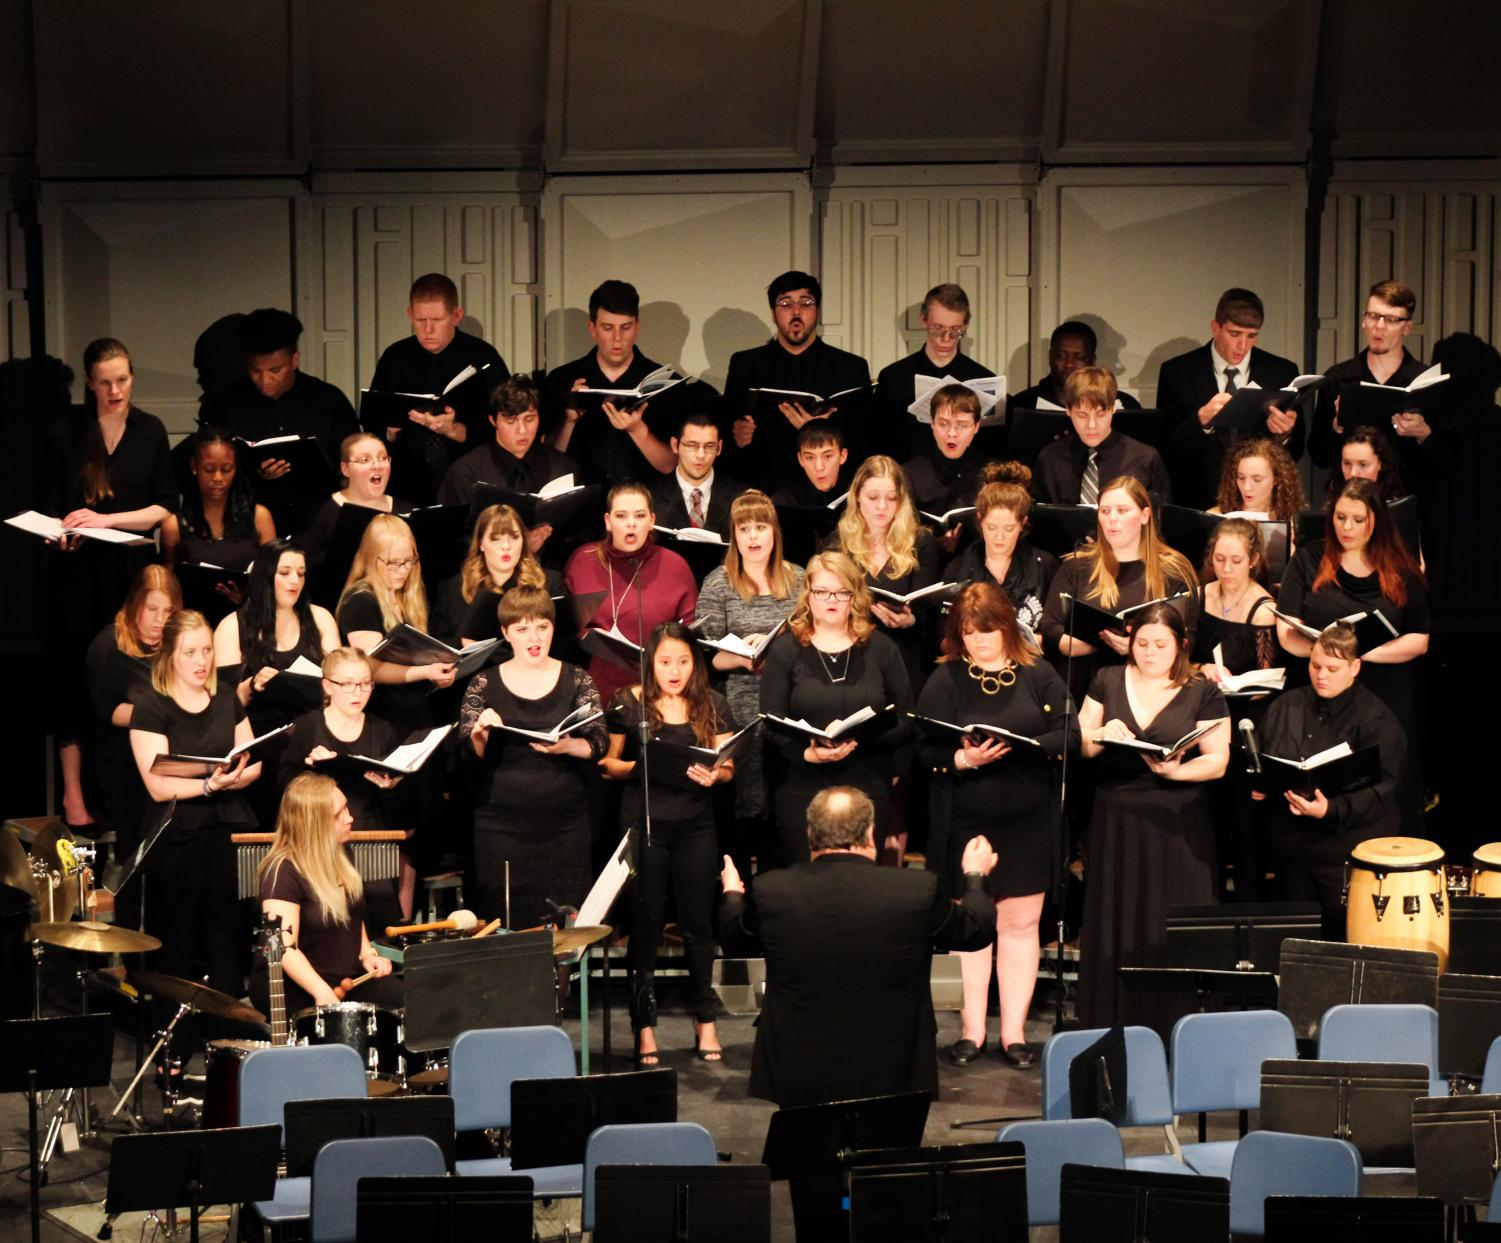 Alan+Murray%2C+of+Neosho+County+Community+College%2C+directed+the+combined+choir+in+their+performance+of+%22Music+from+Les+Miserables%2C%22+a+16+minute+medley+from+the+Tony+award-winning+musical.